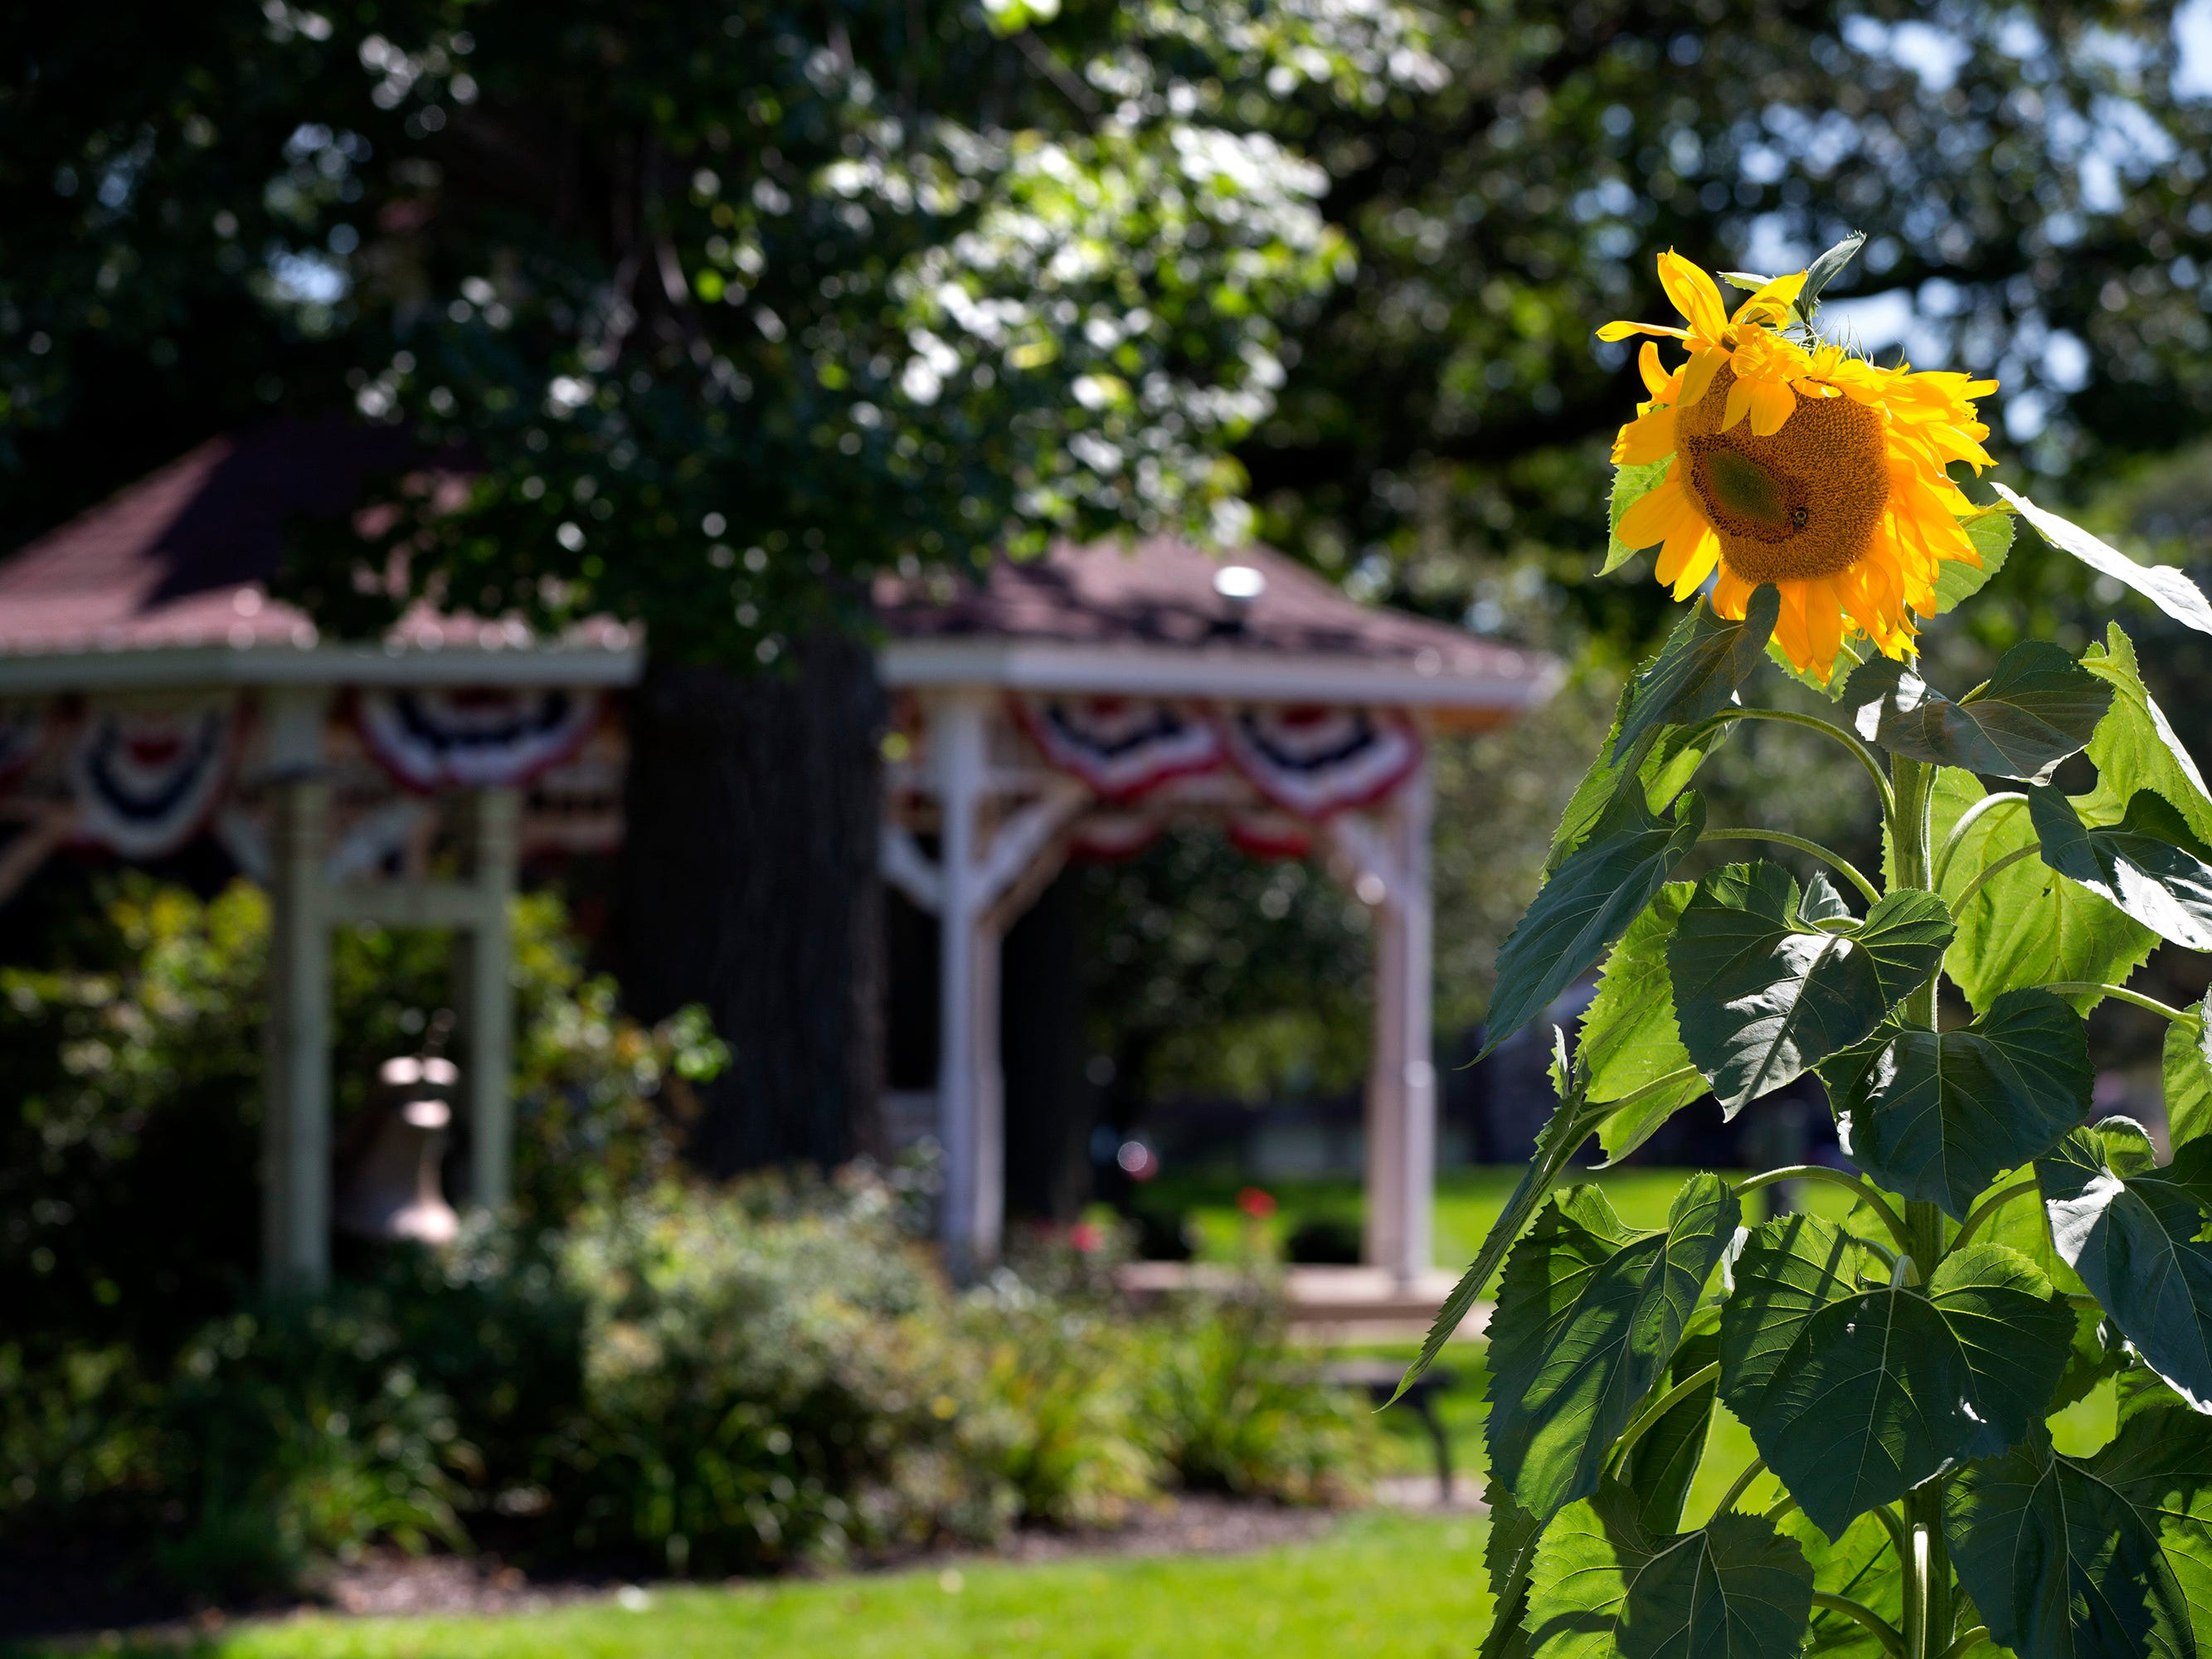 A bee dines on one of the mammoth Russian sunflowers growing in three different locations along Broad Street in Greendale.